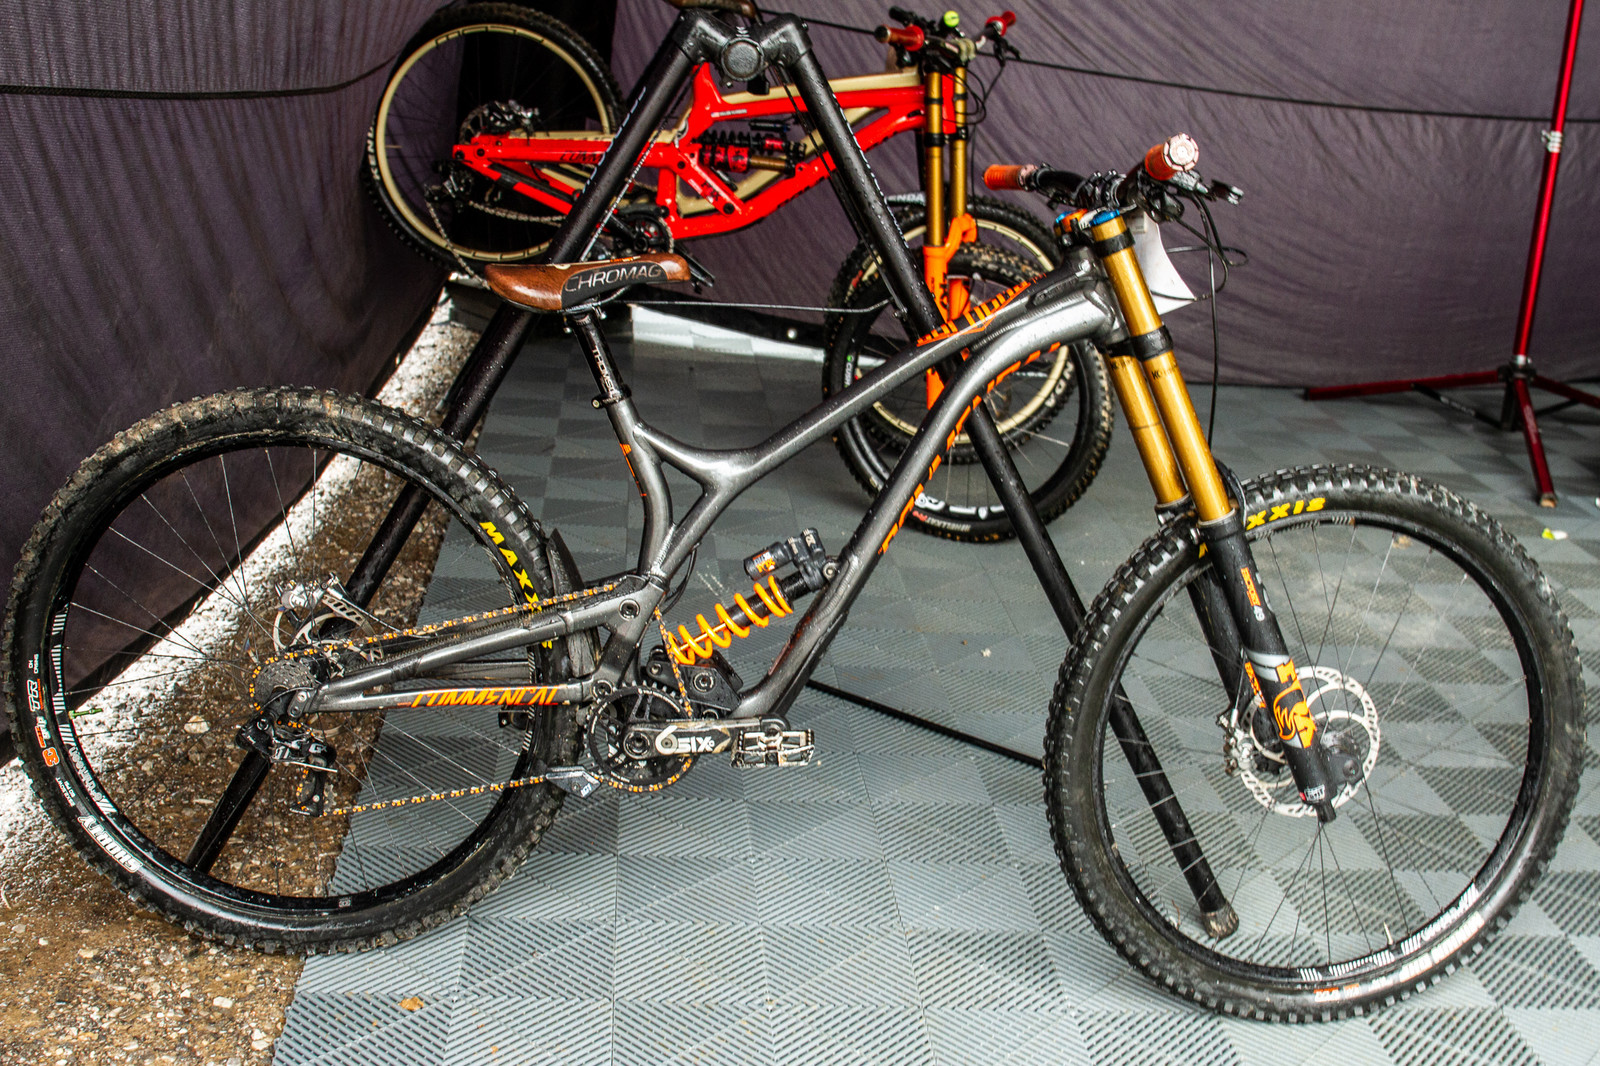 Dillon Flinders' Commencal Supreme DH 29er - PIT BITS - 2019 Windrock Tennessee National Pro GRT  - Mountain Biking Pictures - Vital MTB